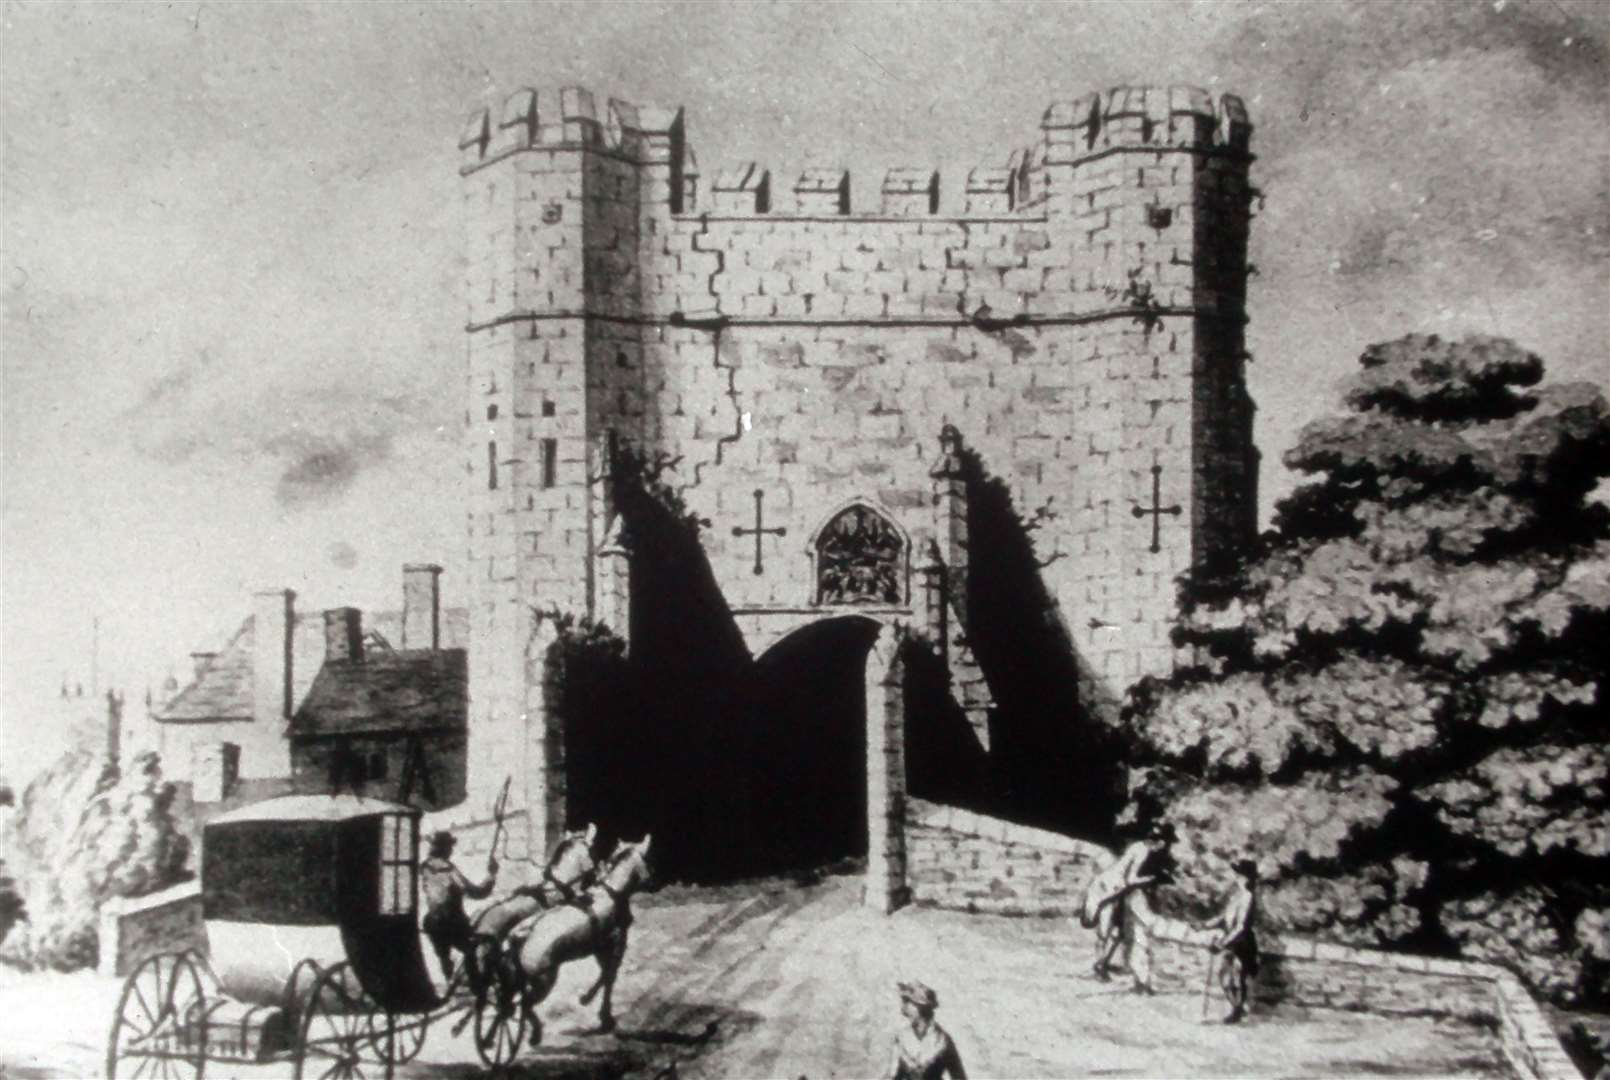 Lynn's old East Gate, shown here before it was demolished in 1800, was closed to traffic during times of plague (44398023)